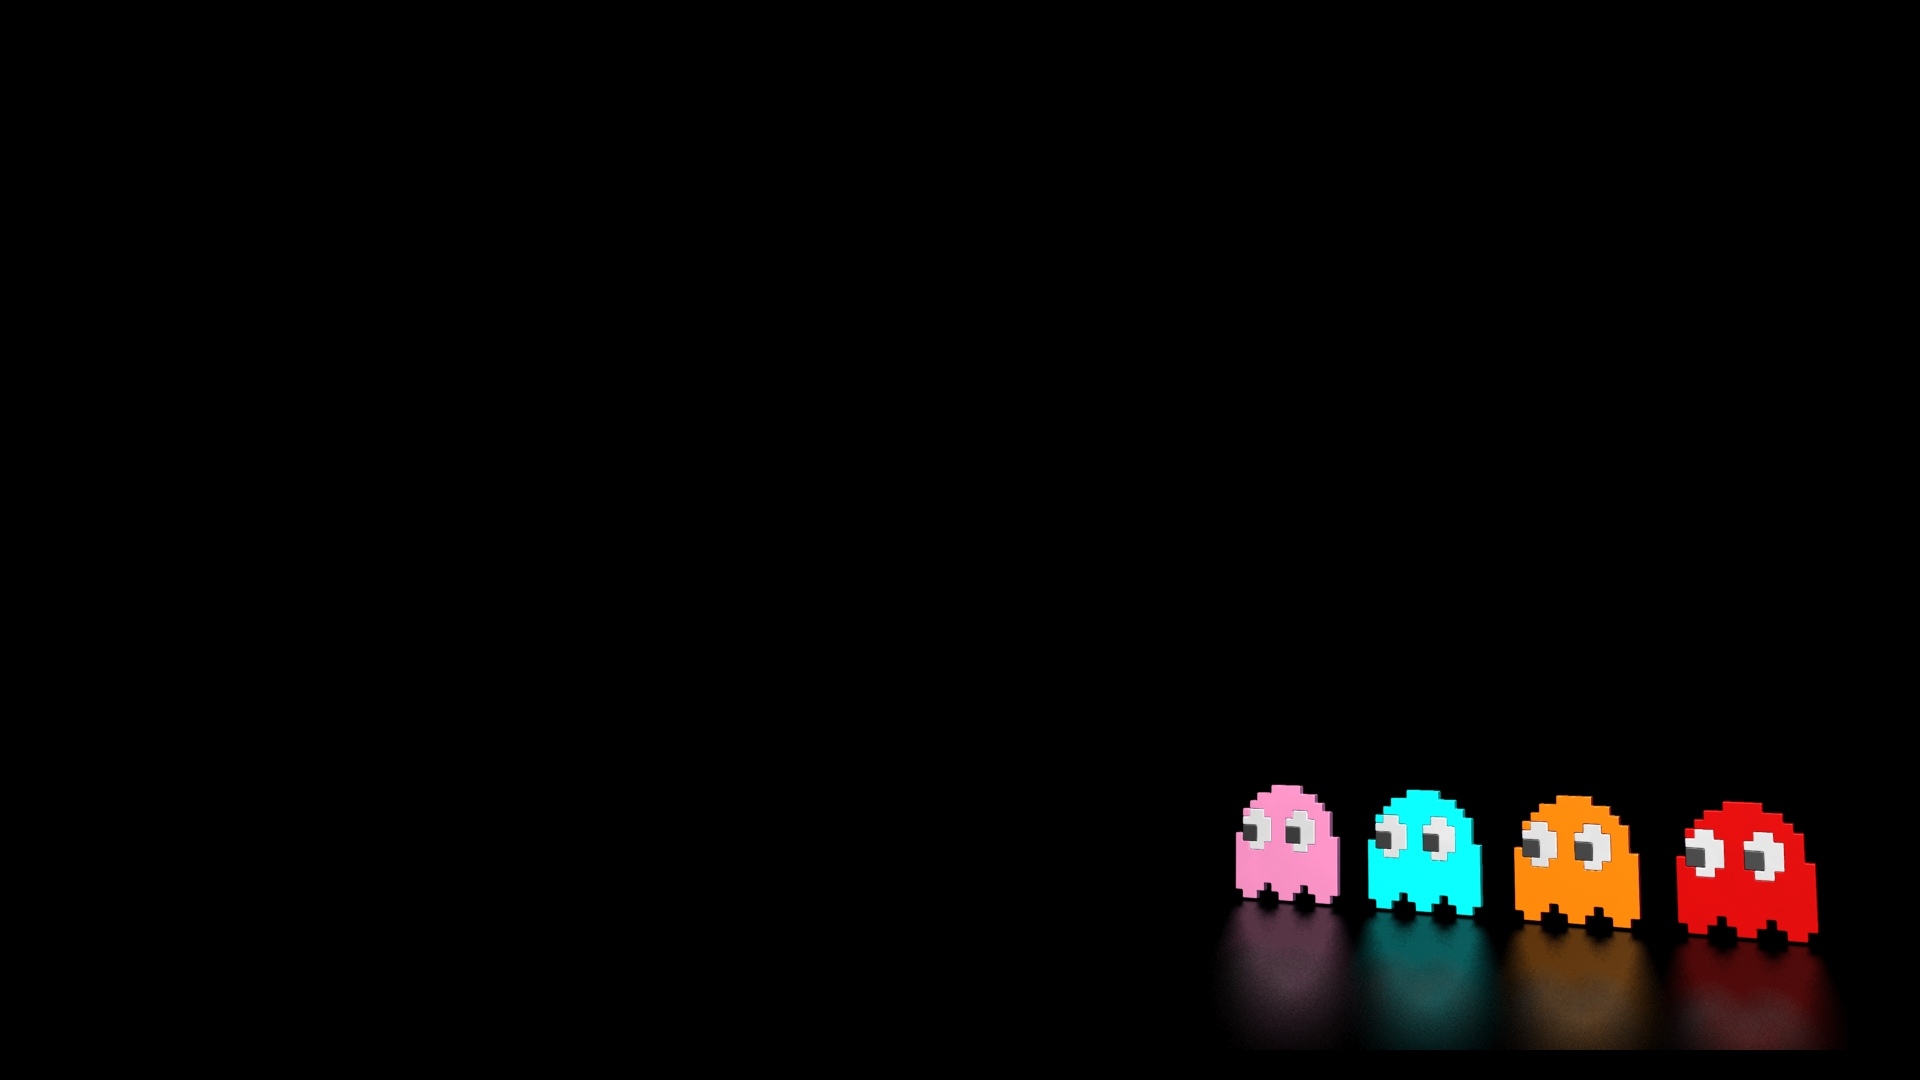 Reflective Wallpaper Reflective pacman ghosts